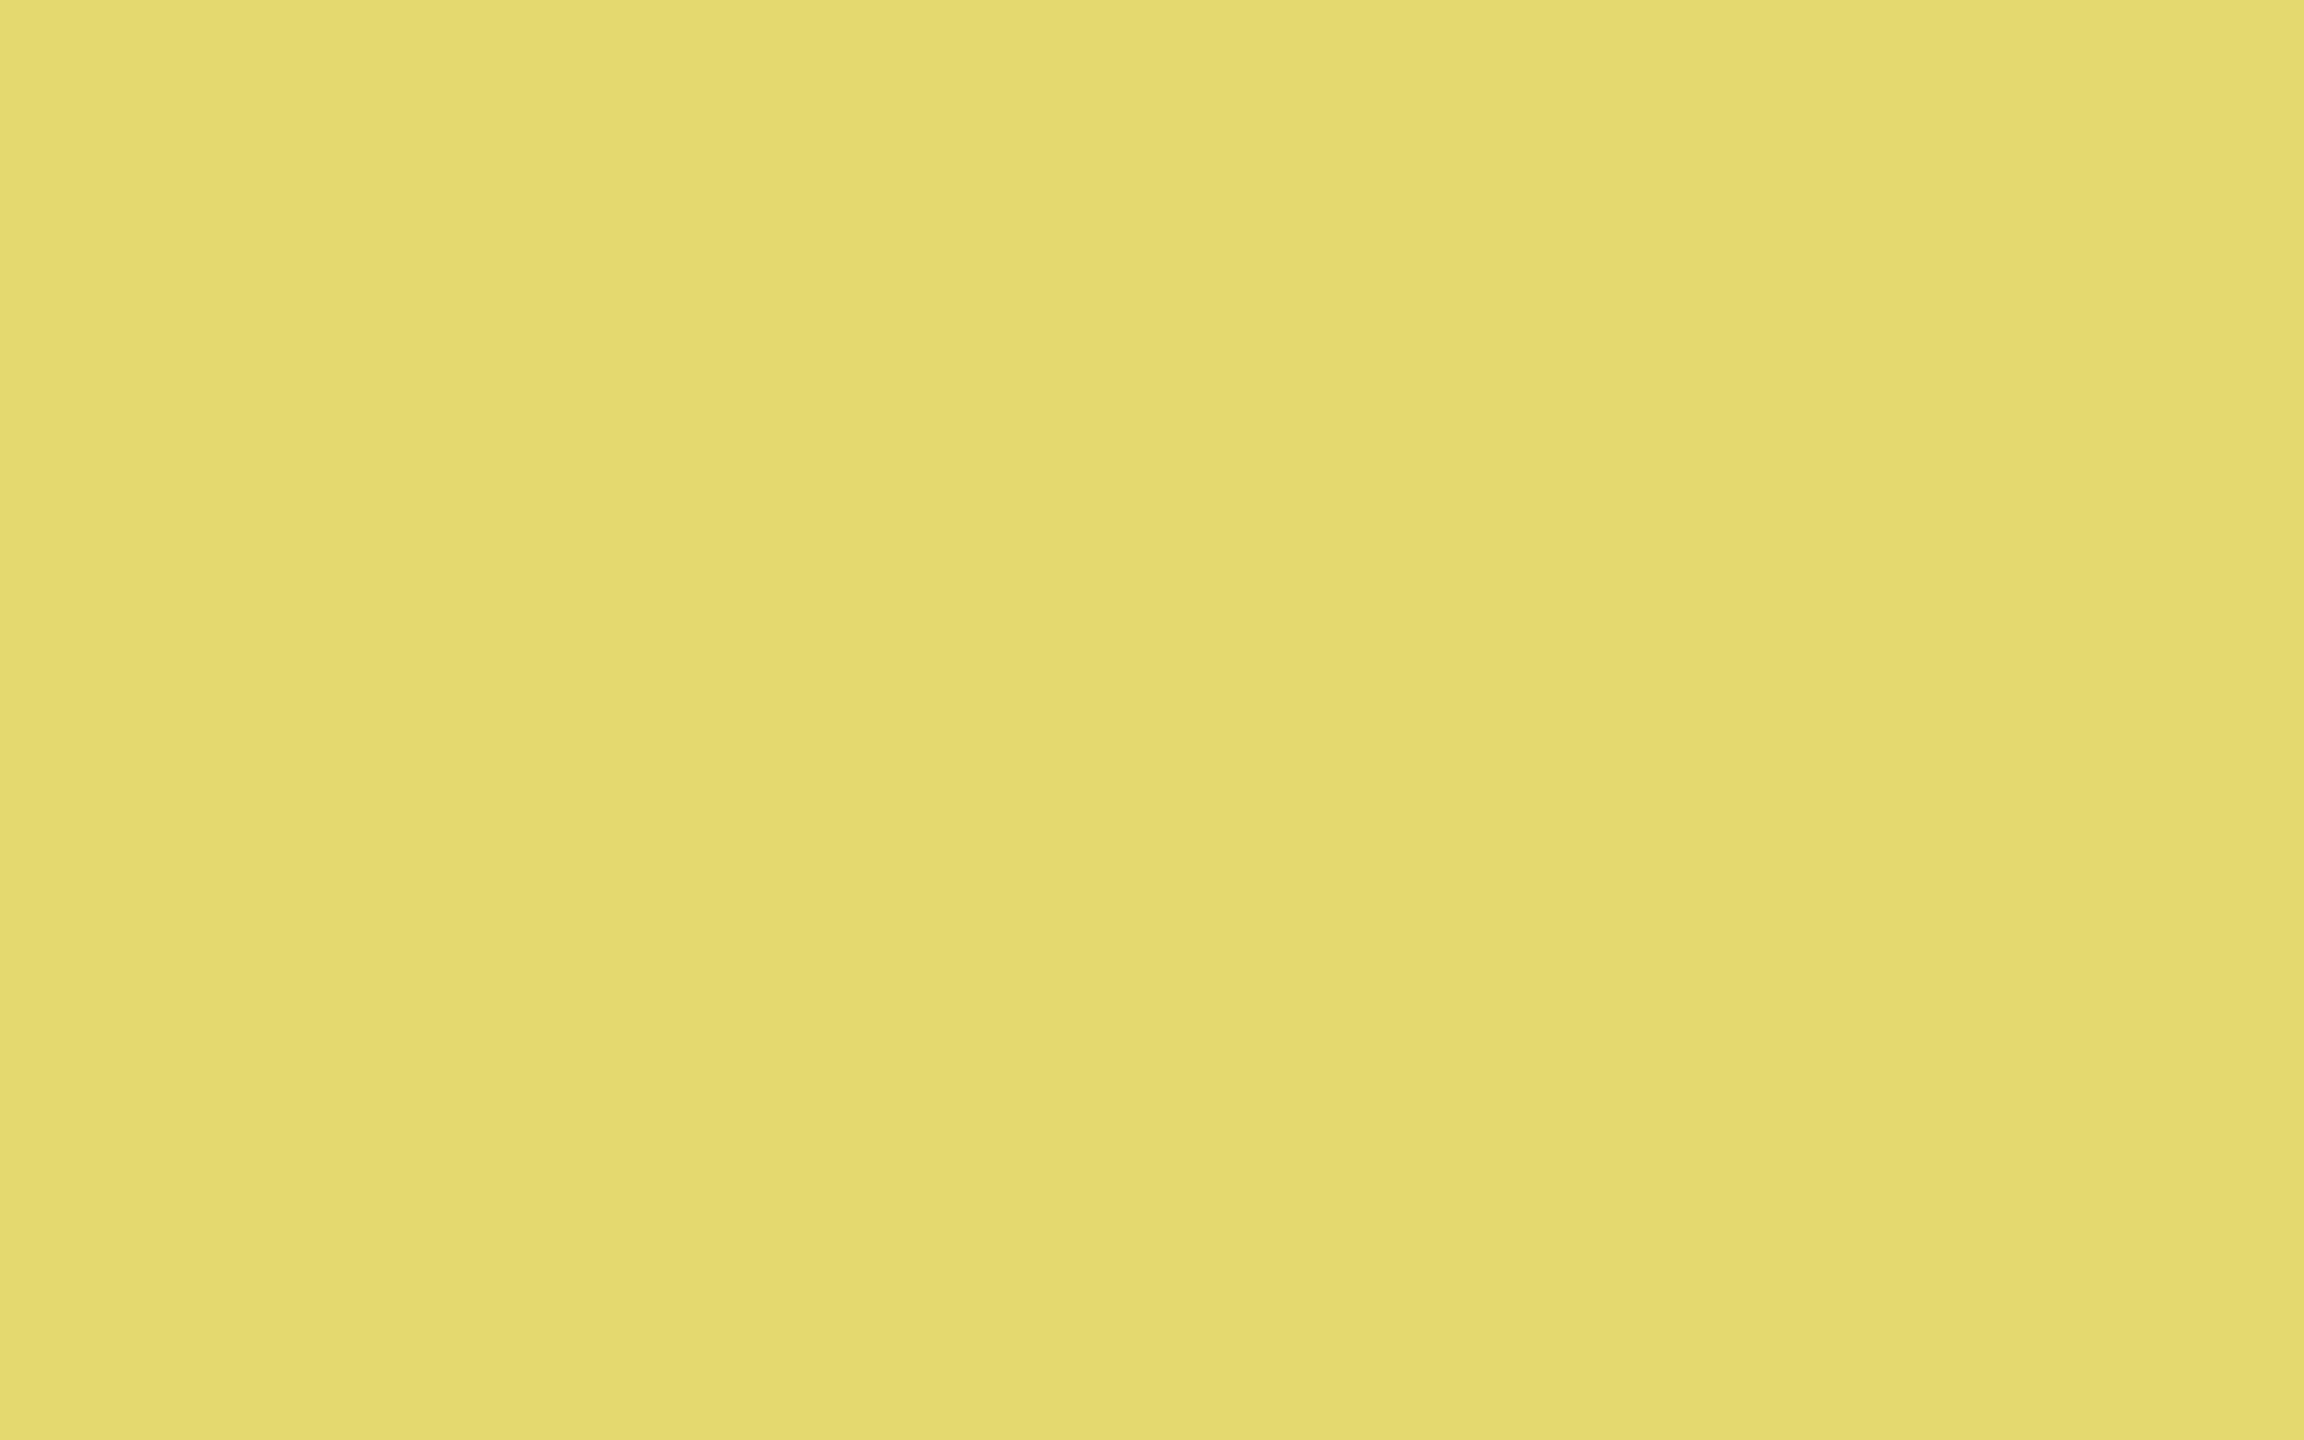 2304x1440 Straw Solid Color Background